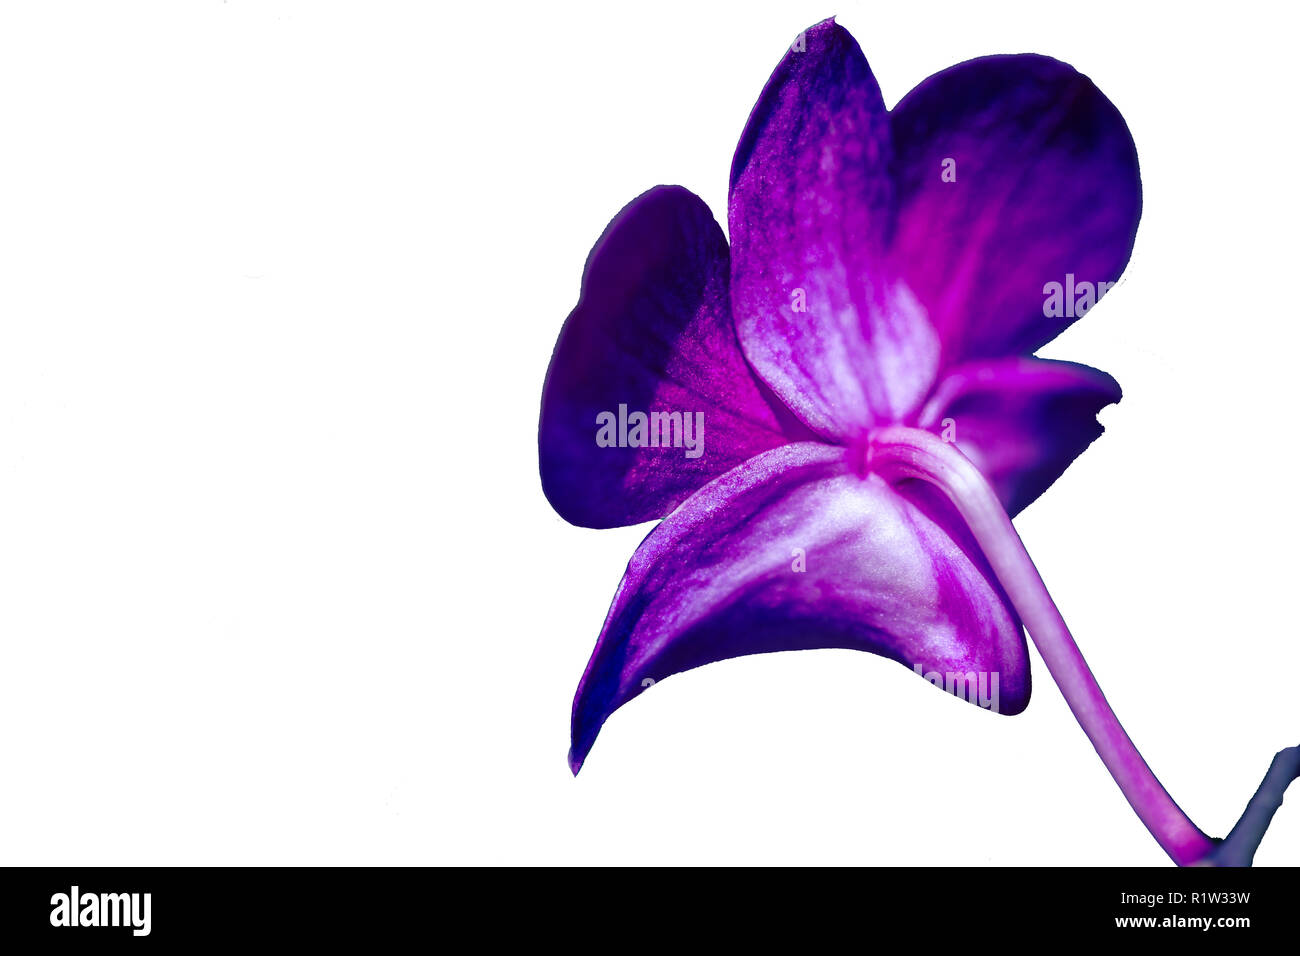 Delicate scarlet pink flower phalaenopsis orchid isolated on white background. - Stock Image